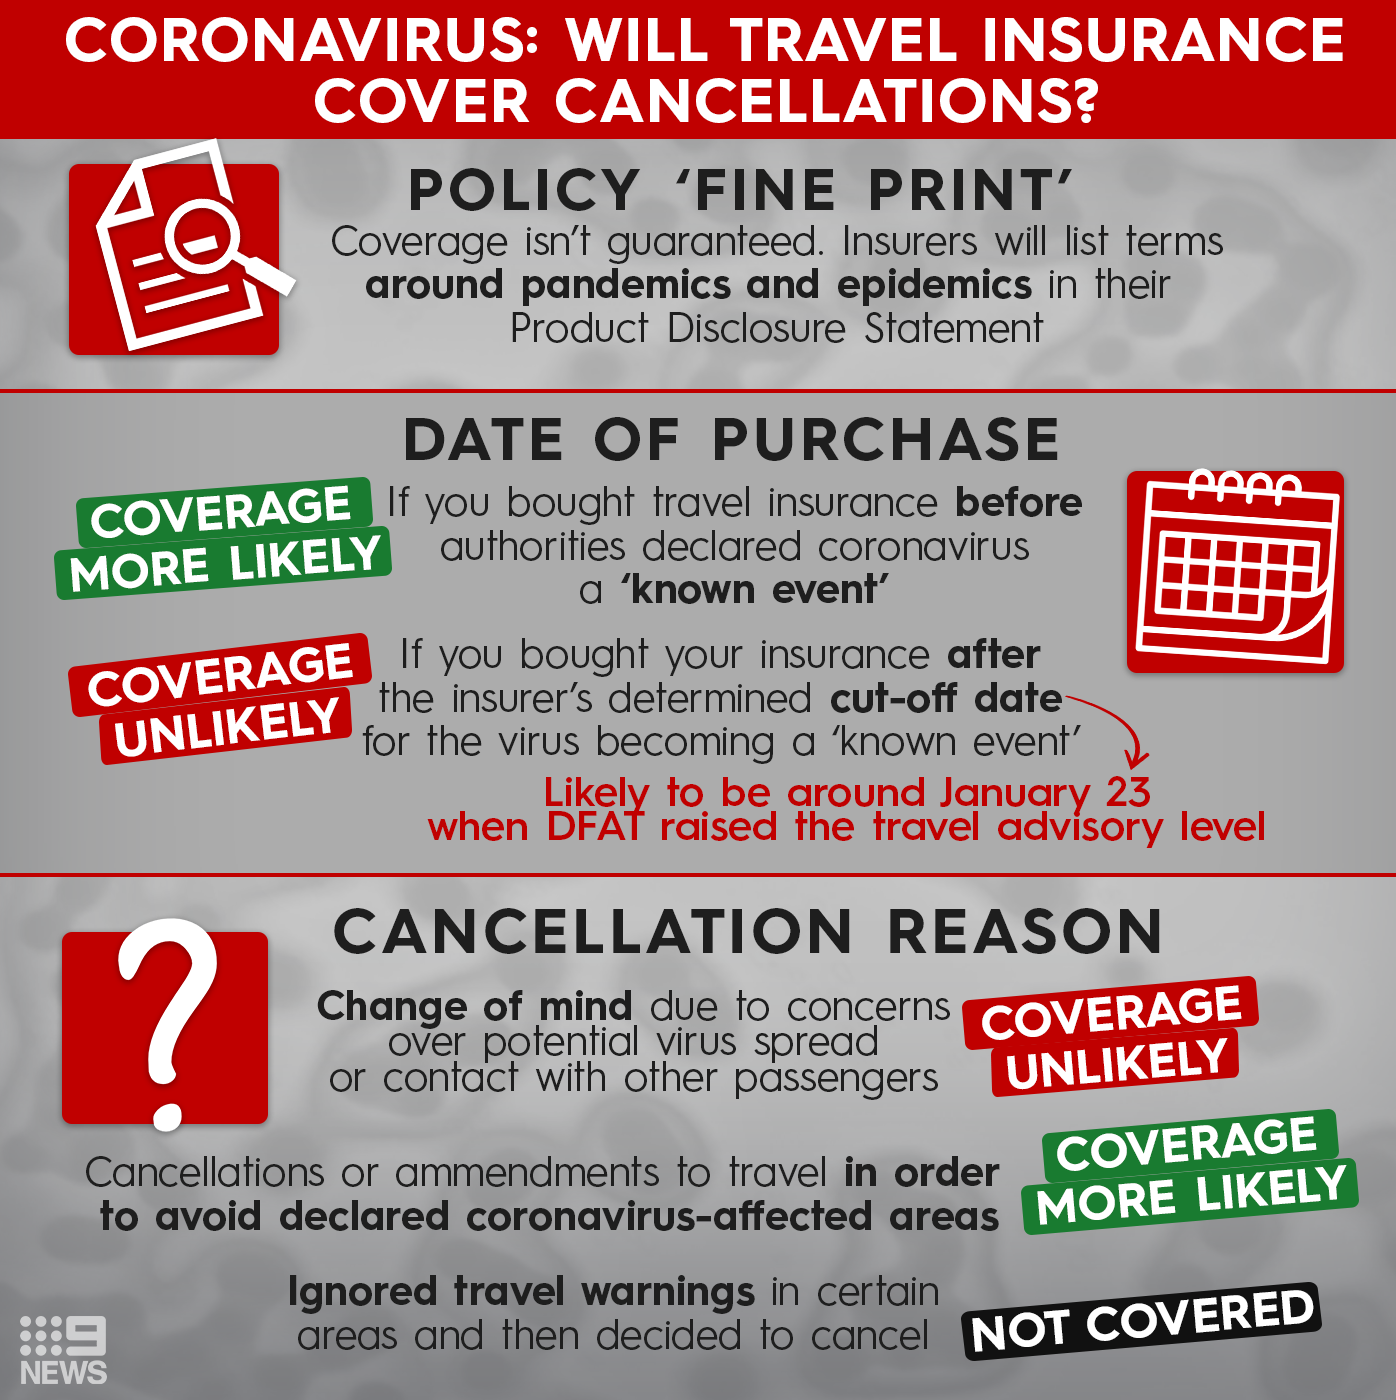 Coronavirus: Will travel insurance cover cancellations?